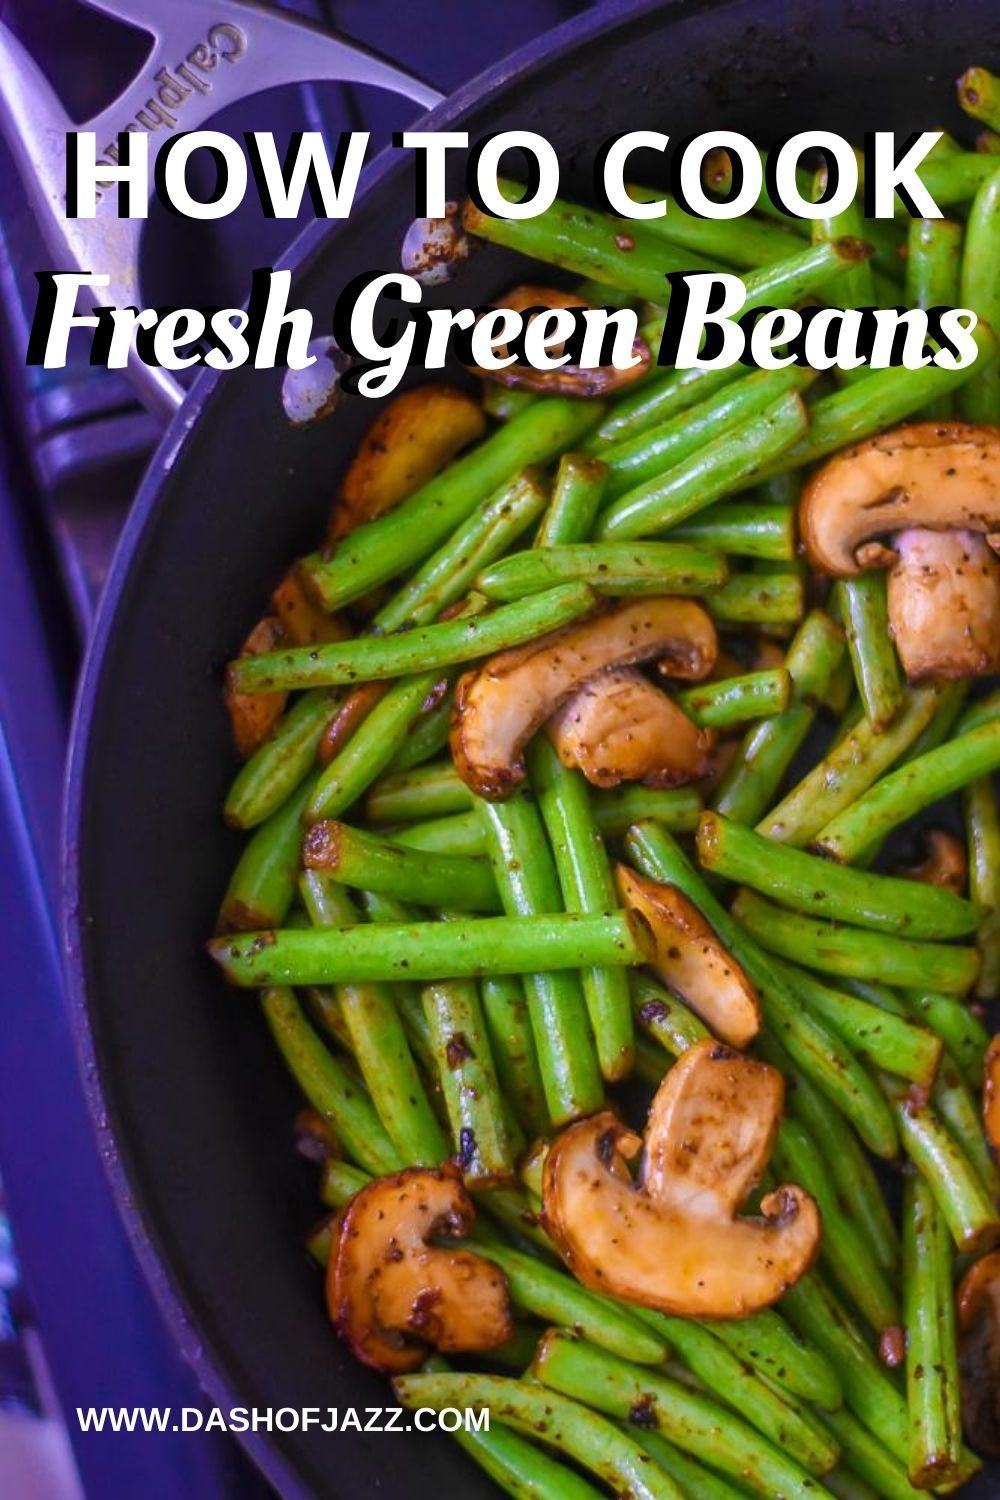 decorative image of green beans for Pinterest